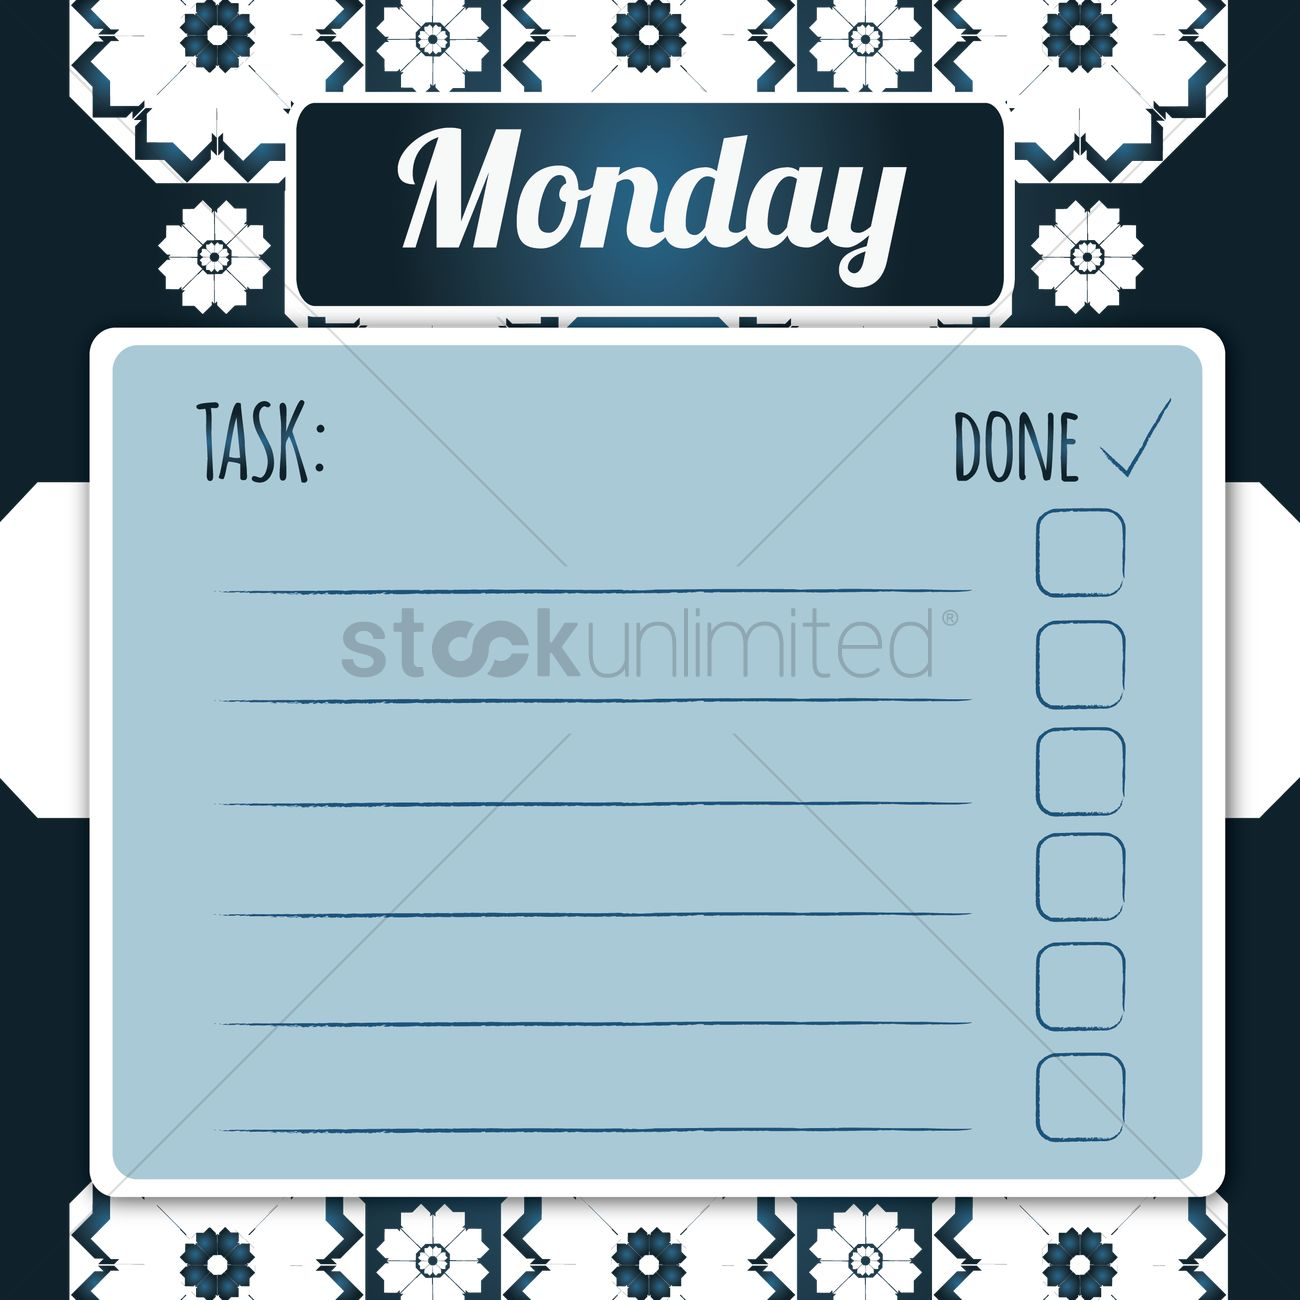 blank daily checklist template vector image - 1480046 | stockunlimited